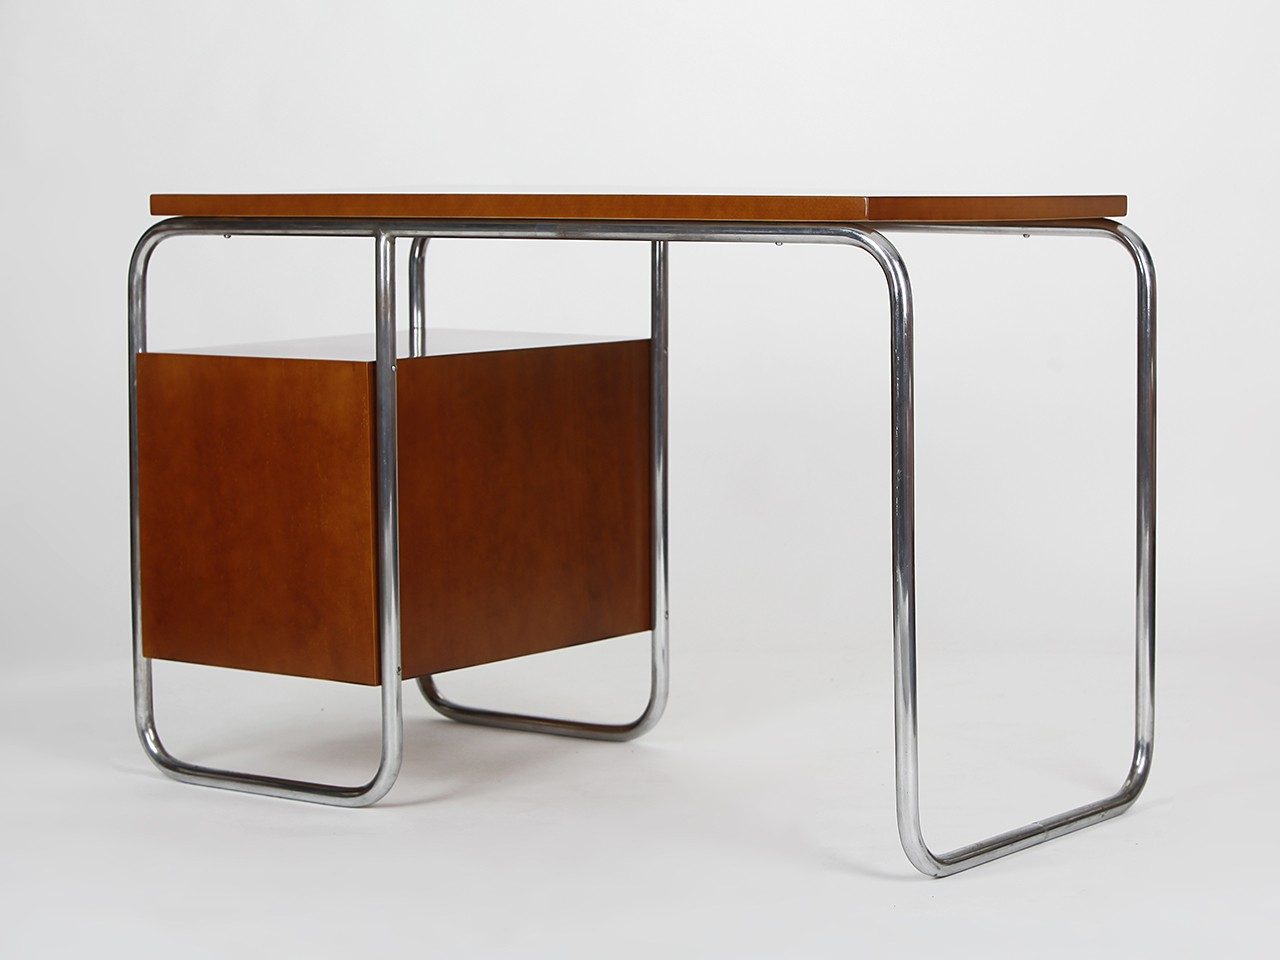 Tubular Desk In Steel And Wood 1930s Previous Next